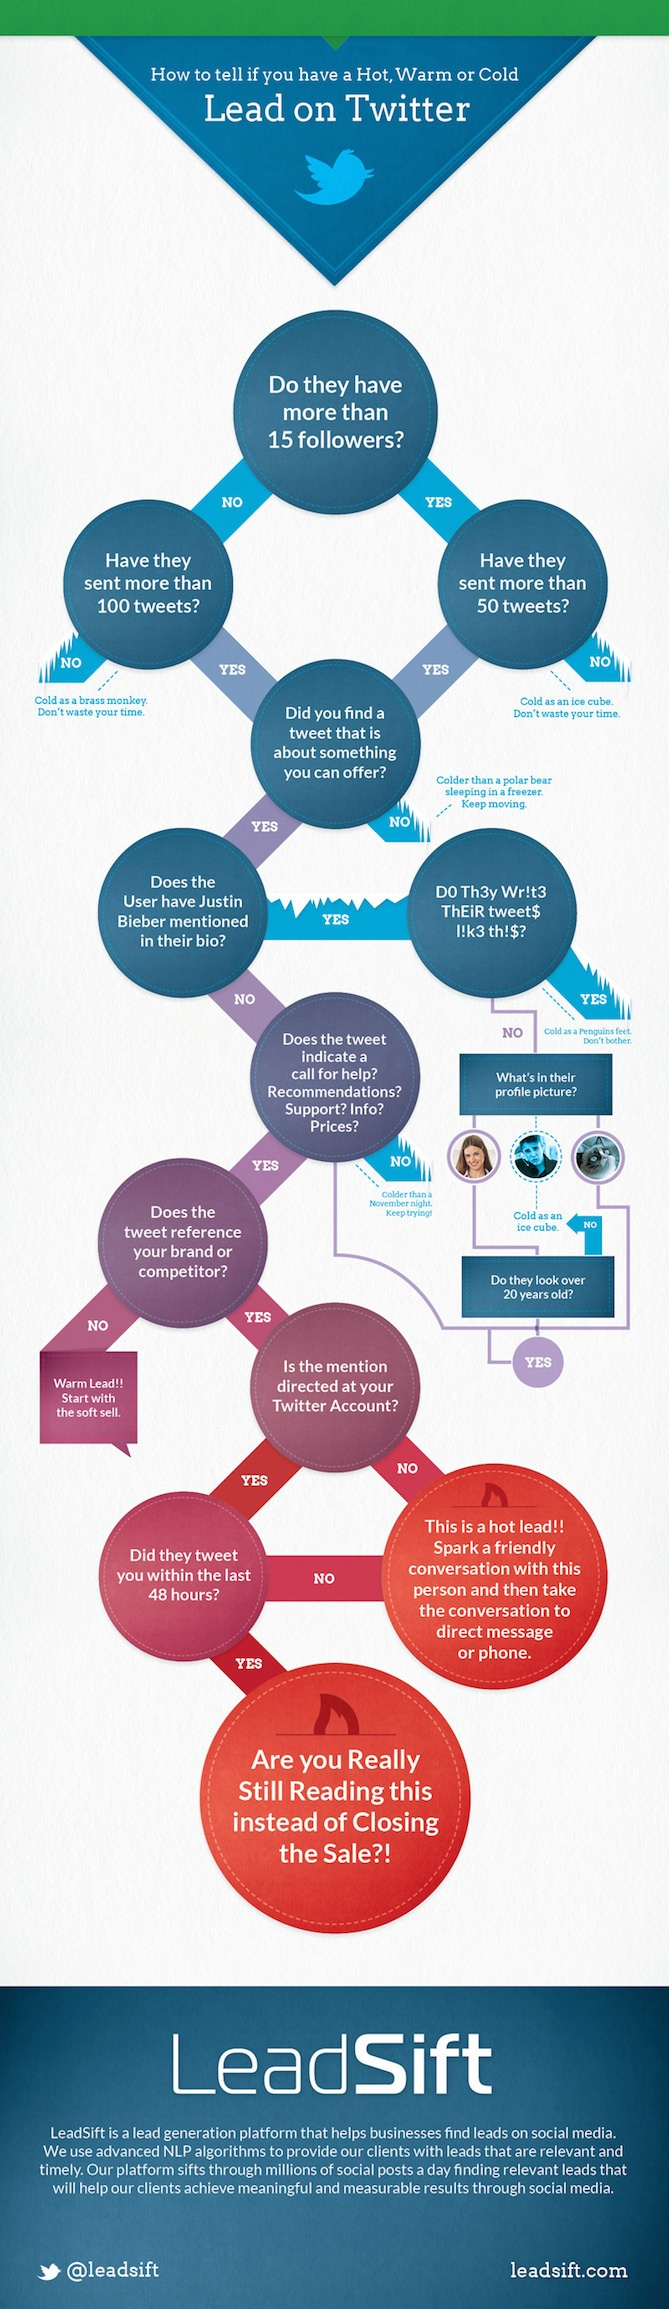 how-to-twitter-leads-infographic.jpg